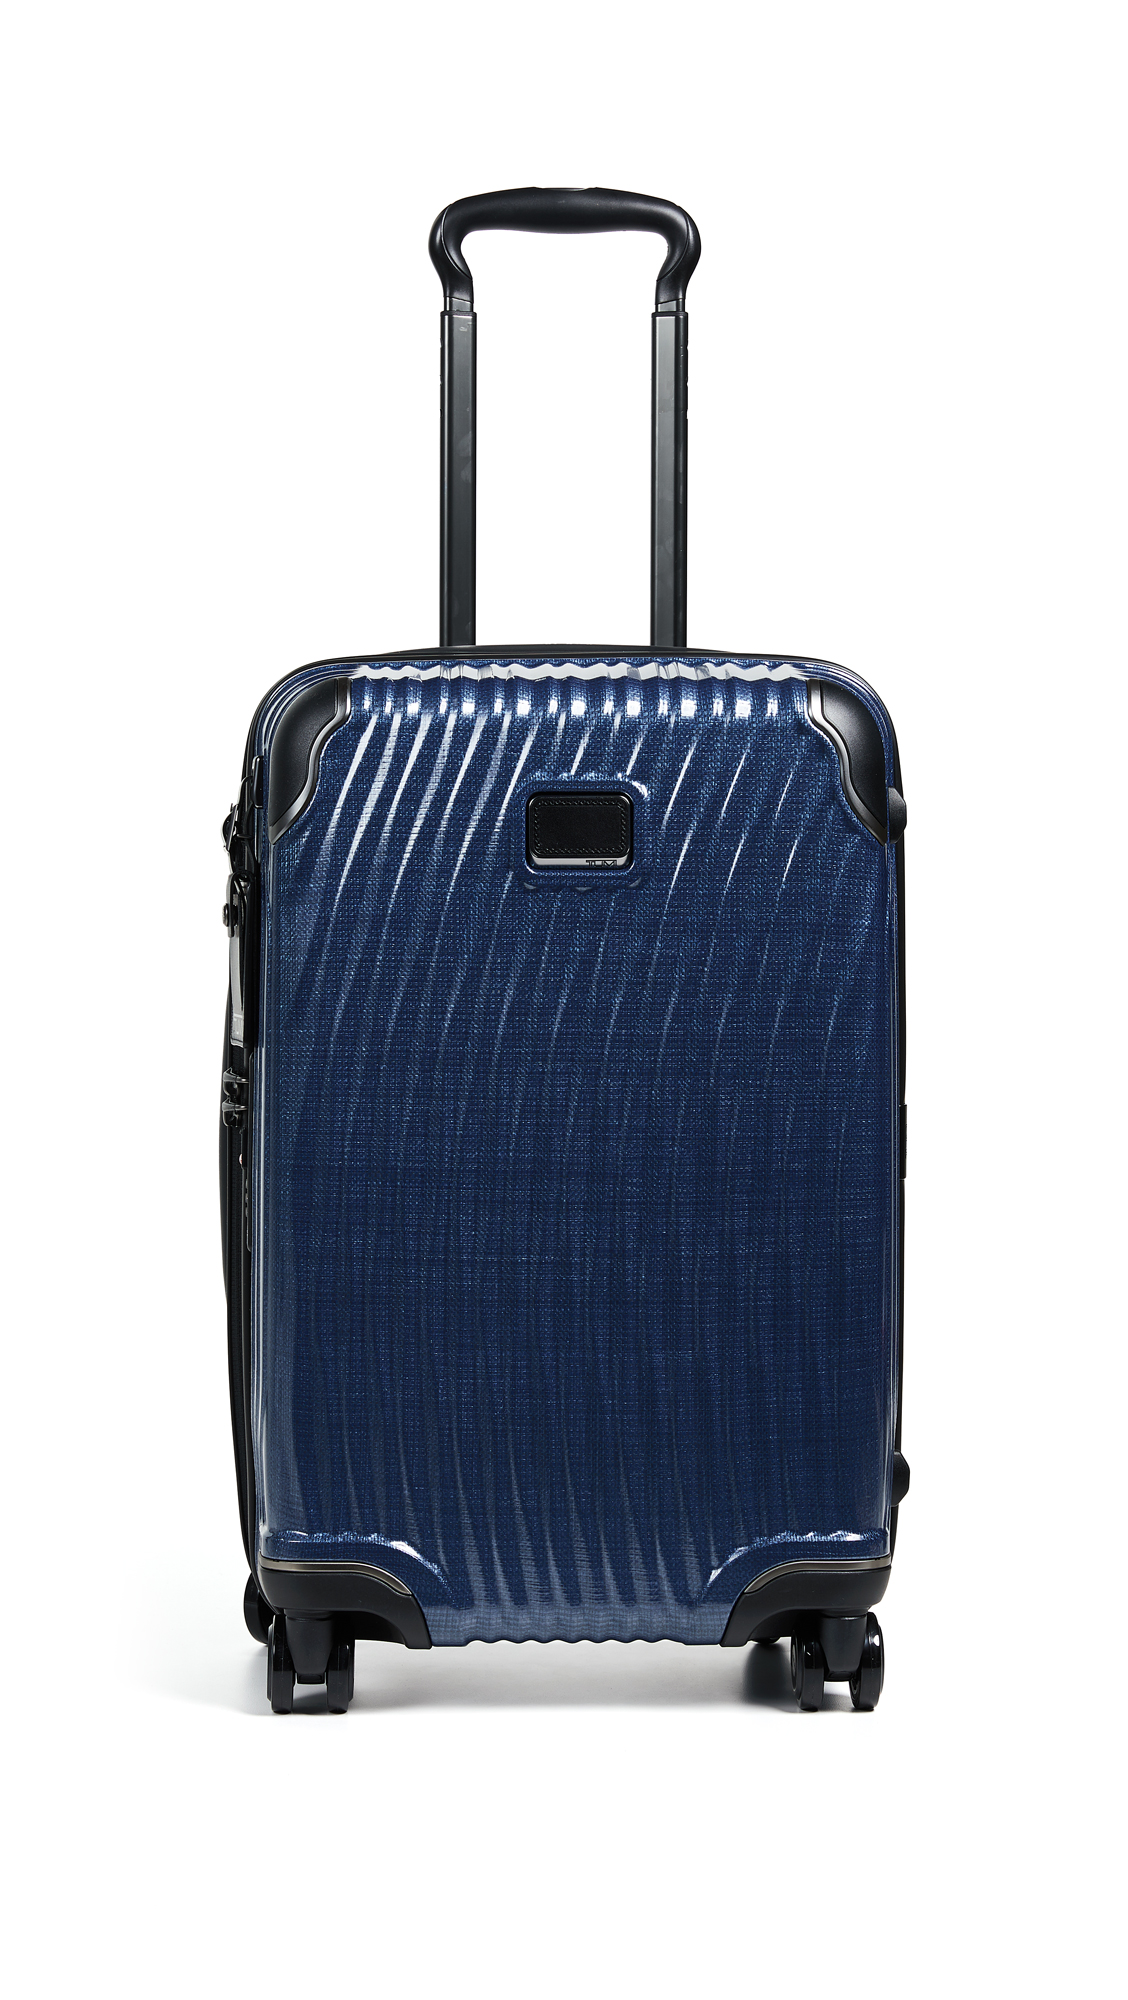 INTERNATIONAL CARRY ON SUITCASE